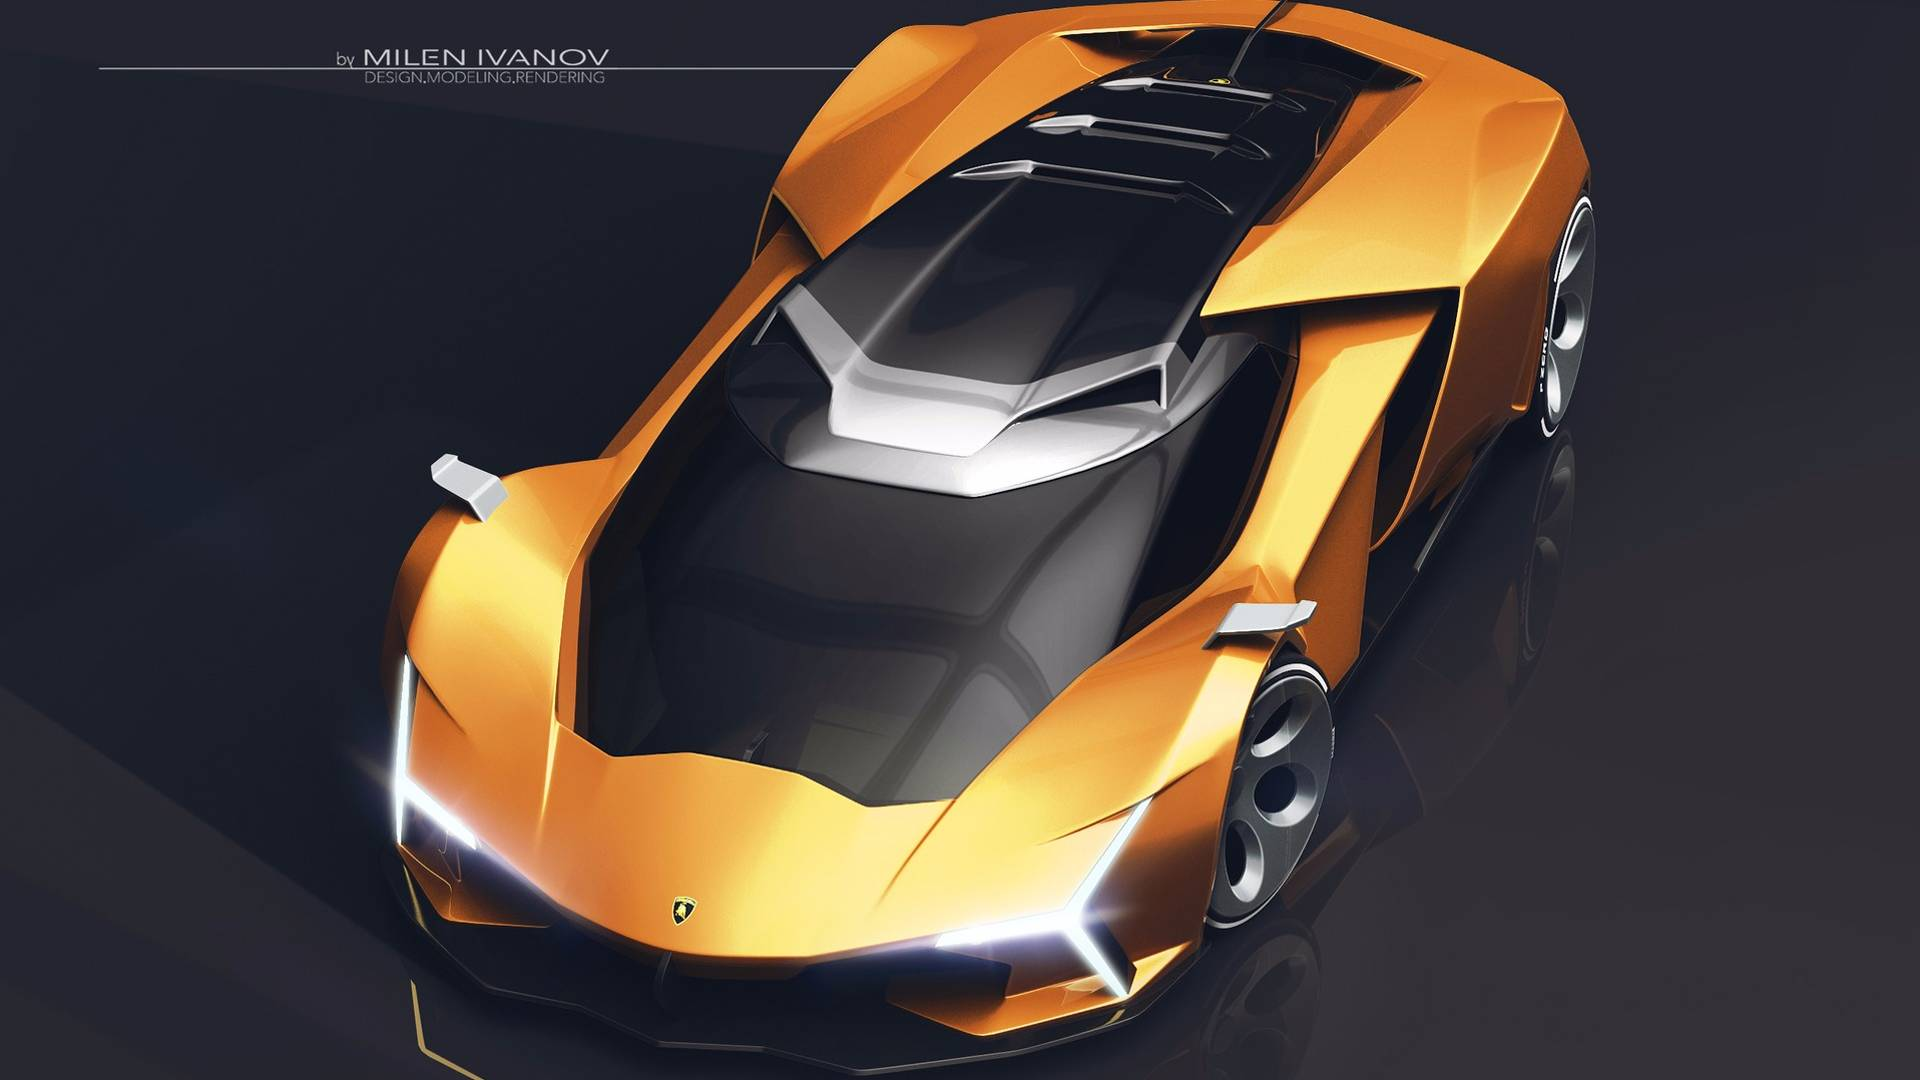 Lamborghini Concepto X Render Could Almost Be The Real Deal